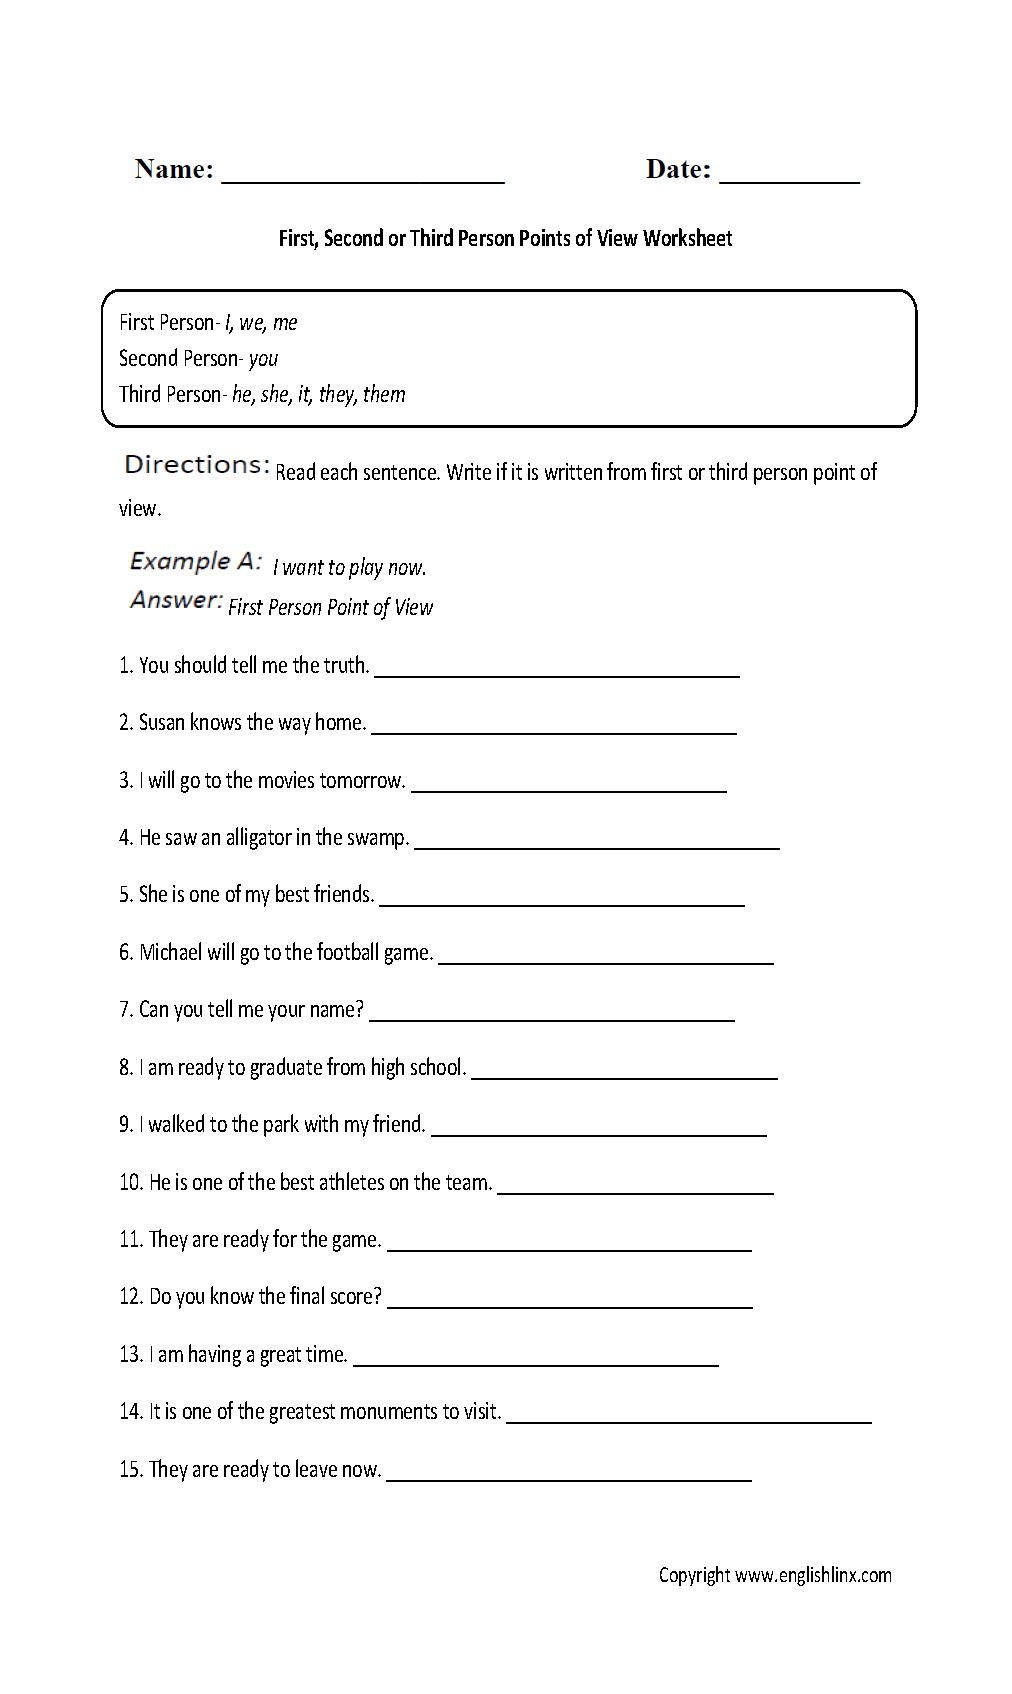 Proatmealus  Personable Englishlinxcom  Point Of View Worksheets With Licious Point Of View Worksheet With Attractive Printable Grammar Worksheets Also Shark Worksheets For Kids In Addition Printable Th Grade Reading Comprehension Worksheets And Negative Self Talk Worksheet As Well As Non Mendelian Genetics Worksheet Additionally Bill Nye Atmosphere Worksheet Answers From Englishlinxcom With Proatmealus  Licious Englishlinxcom  Point Of View Worksheets With Attractive Point Of View Worksheet And Personable Printable Grammar Worksheets Also Shark Worksheets For Kids In Addition Printable Th Grade Reading Comprehension Worksheets From Englishlinxcom